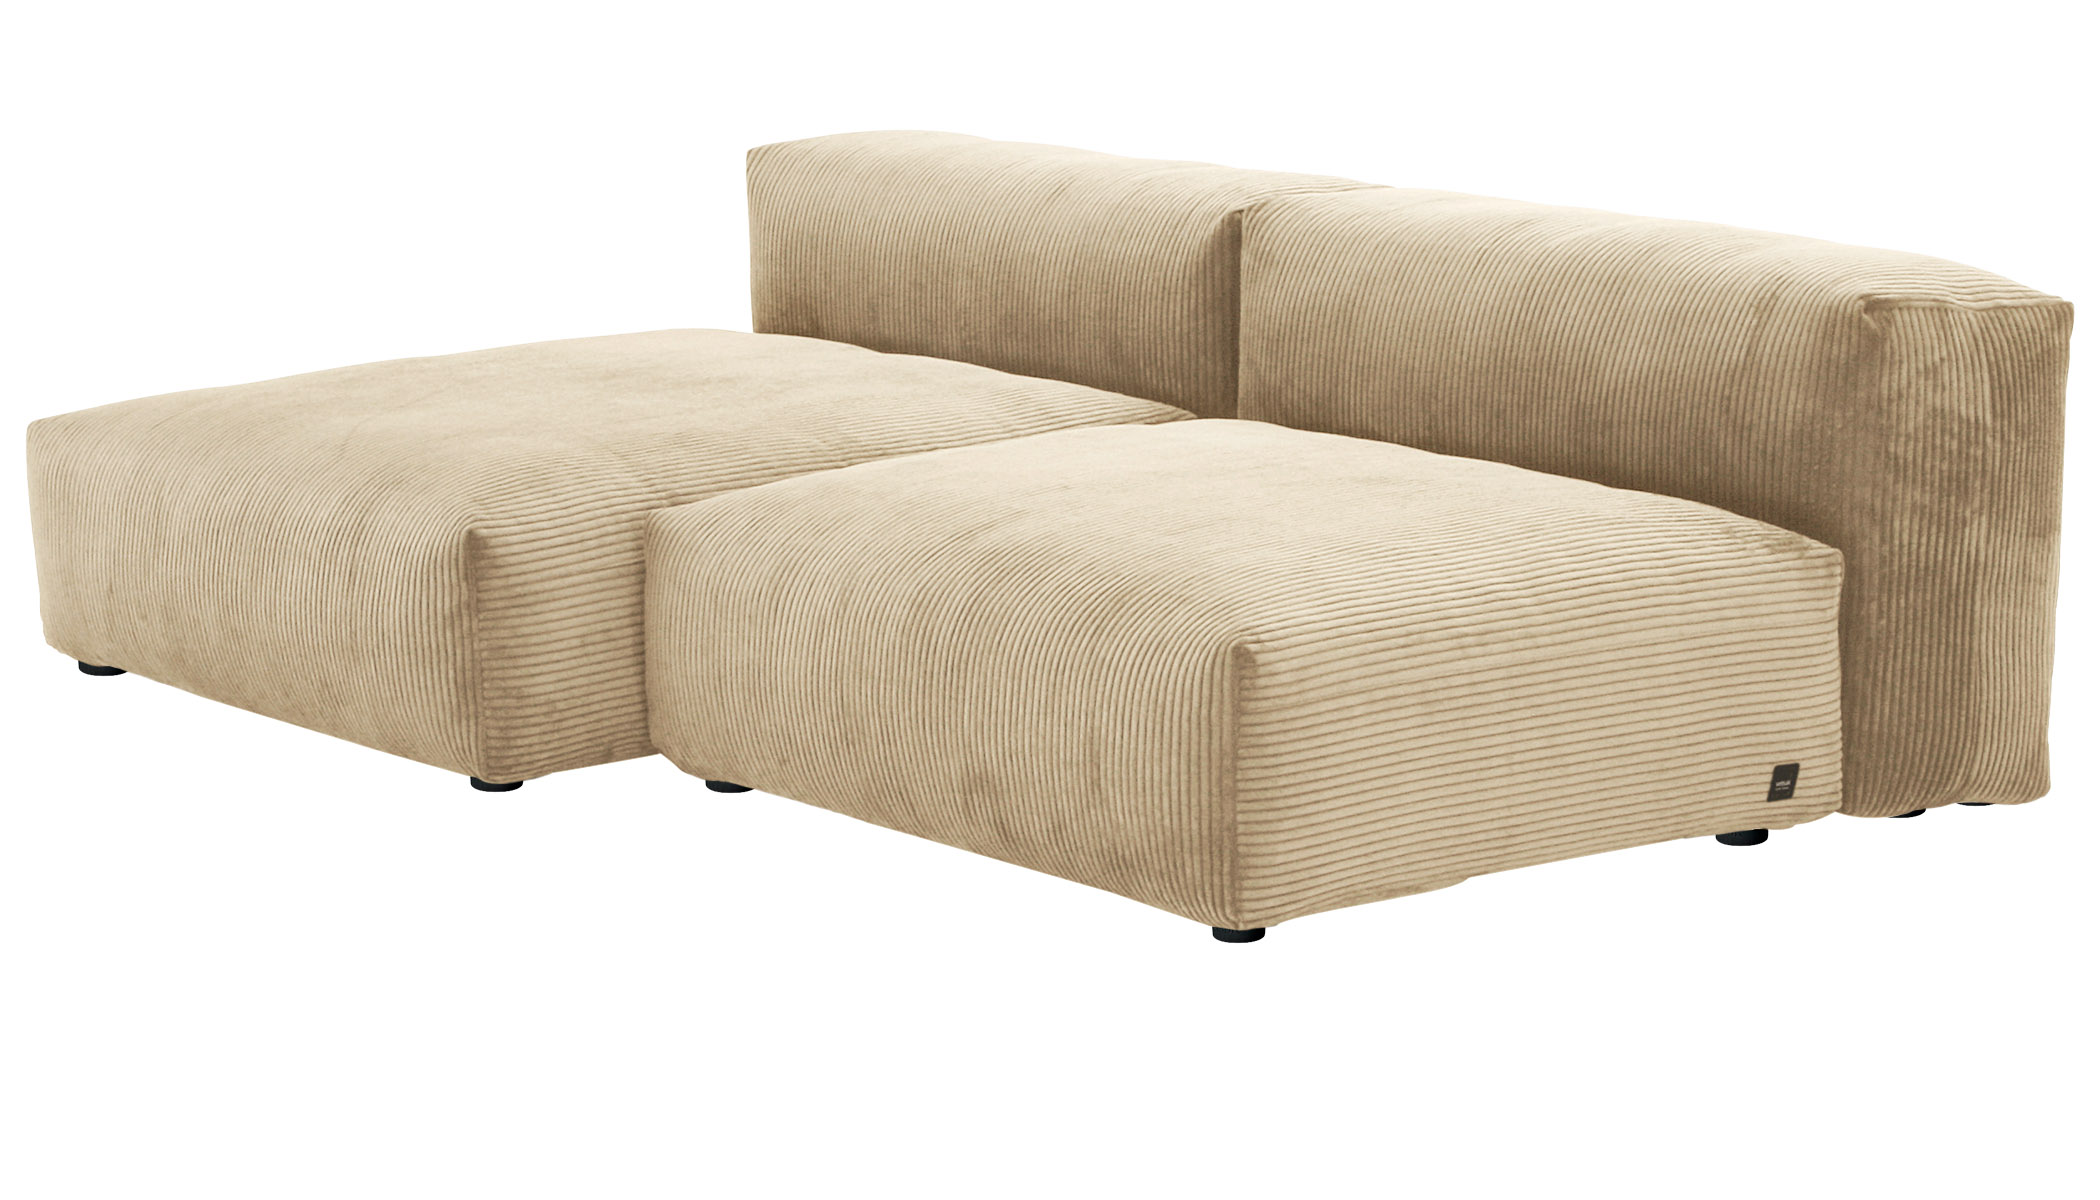 Sofa 2 Large 2 Side Cord Velours sand